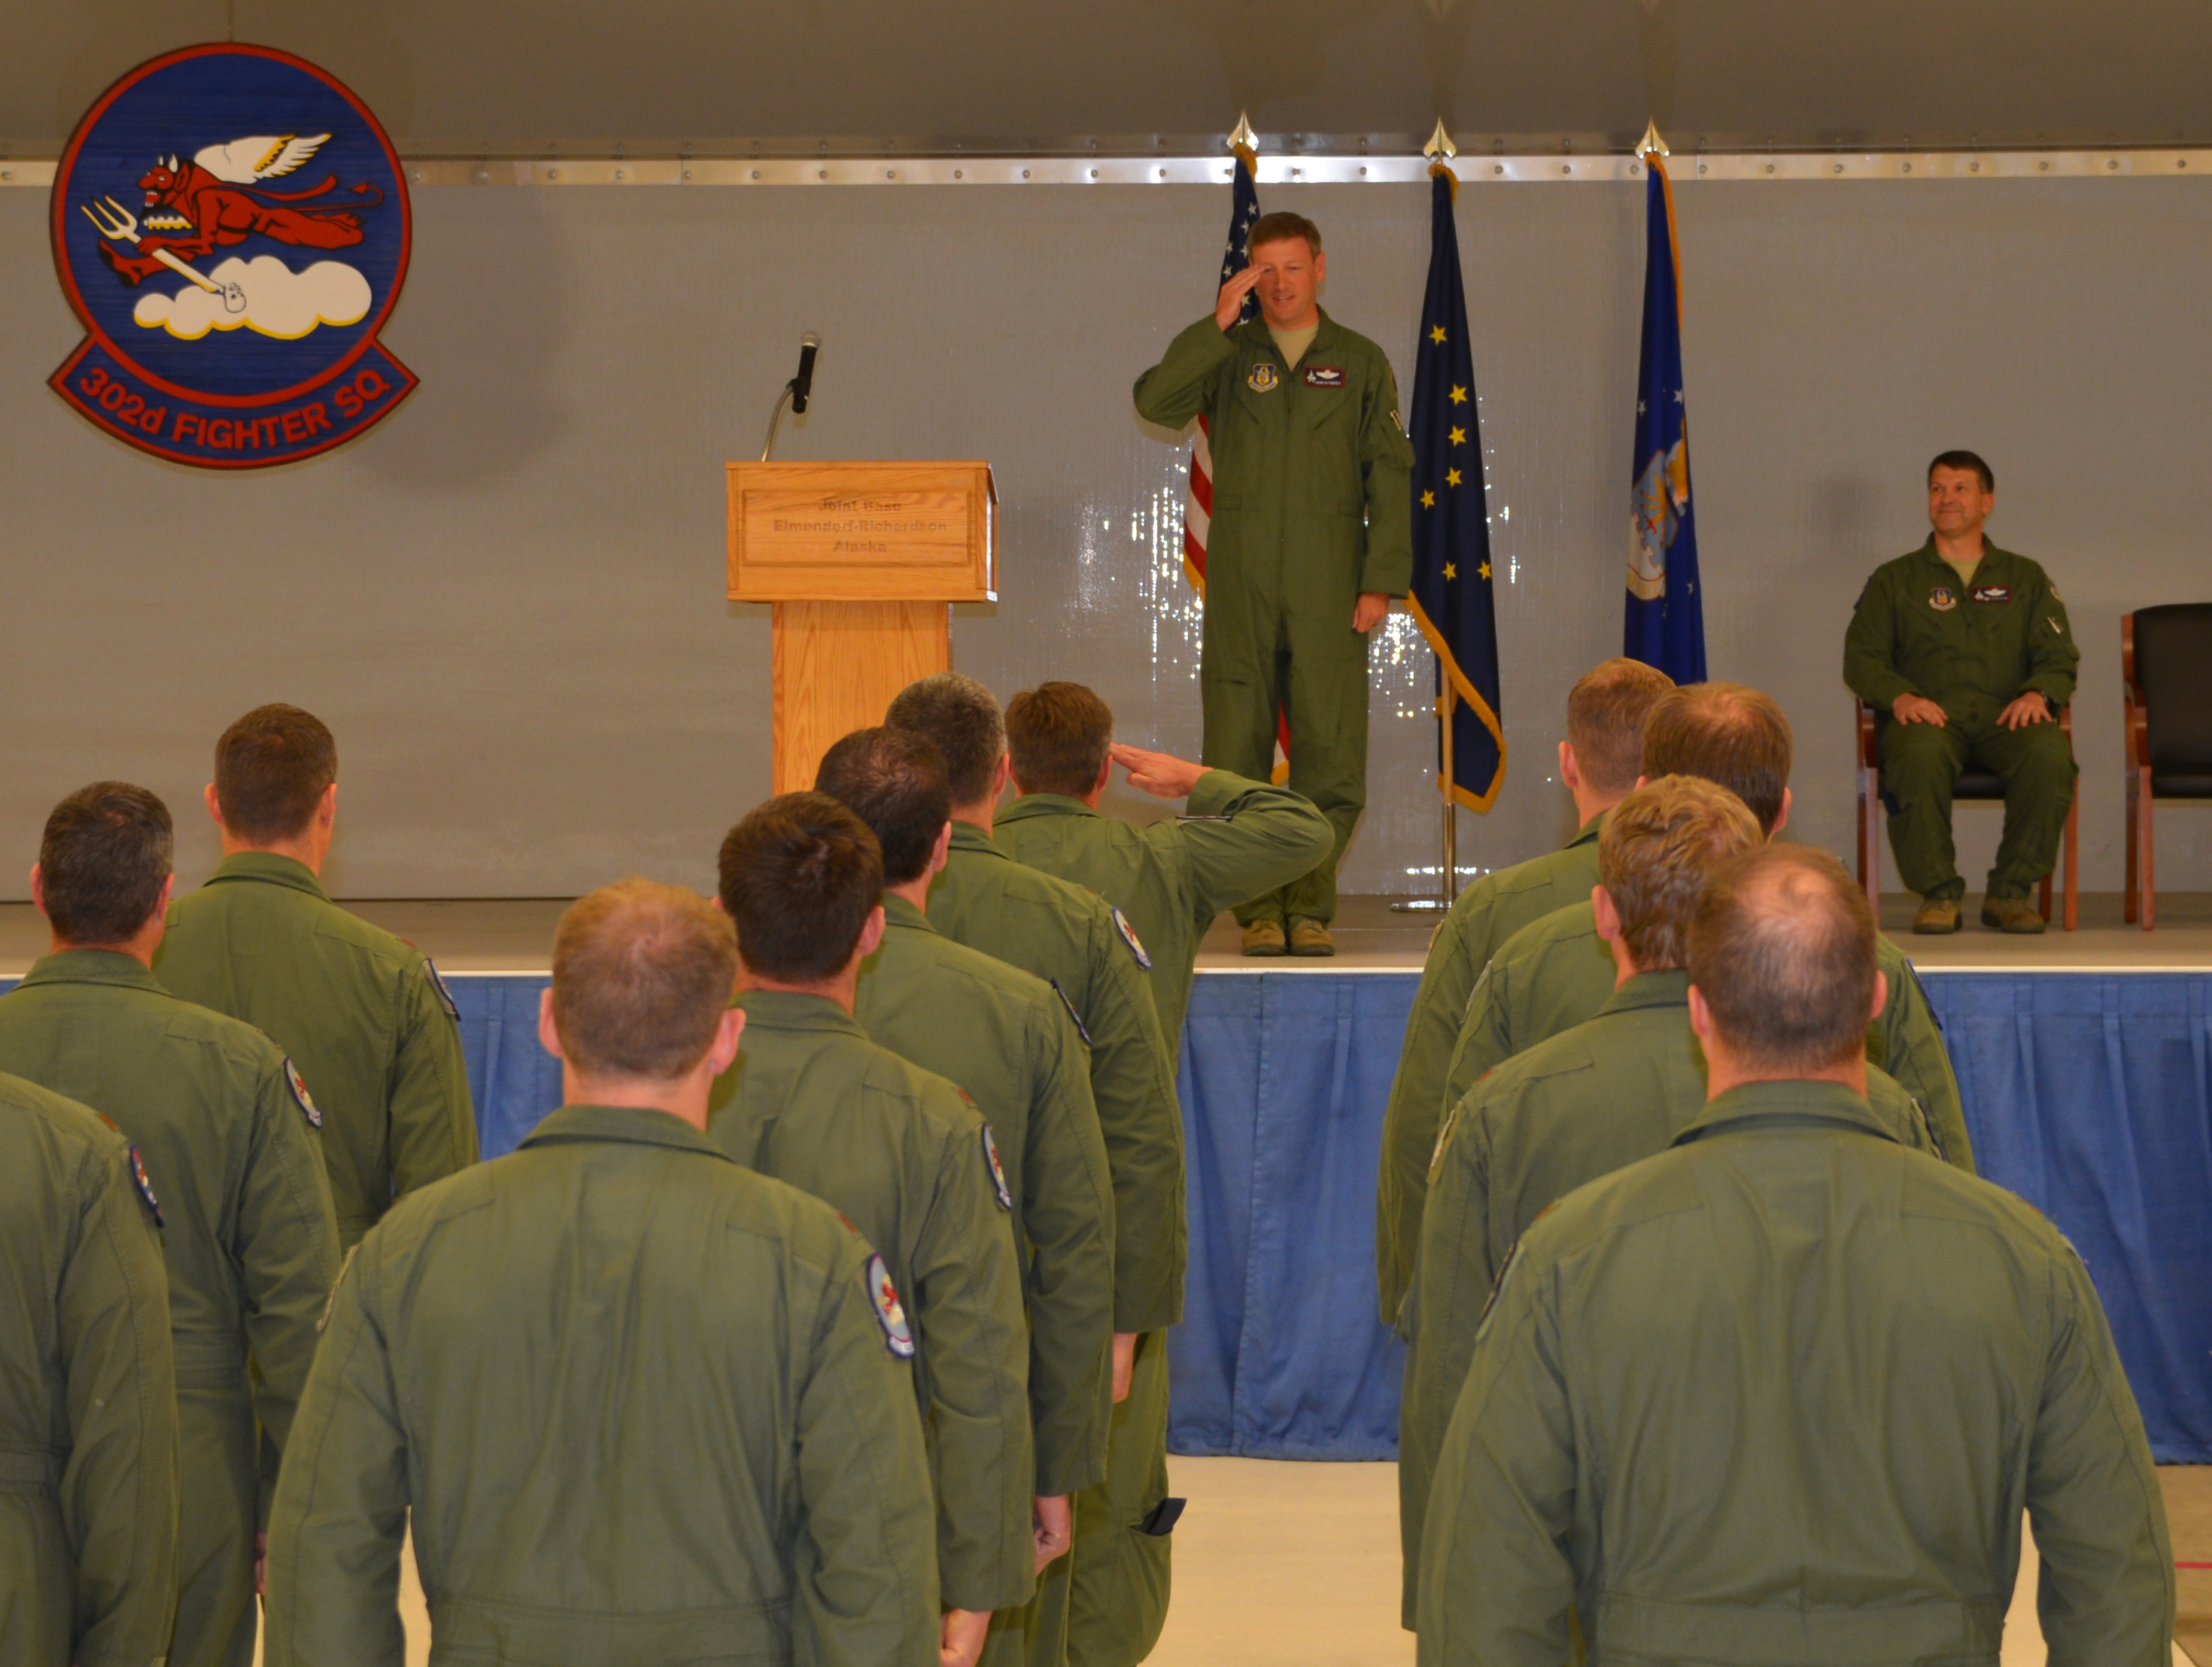 Air Force Reserve 302nd Fighter Squadron Welcomes New